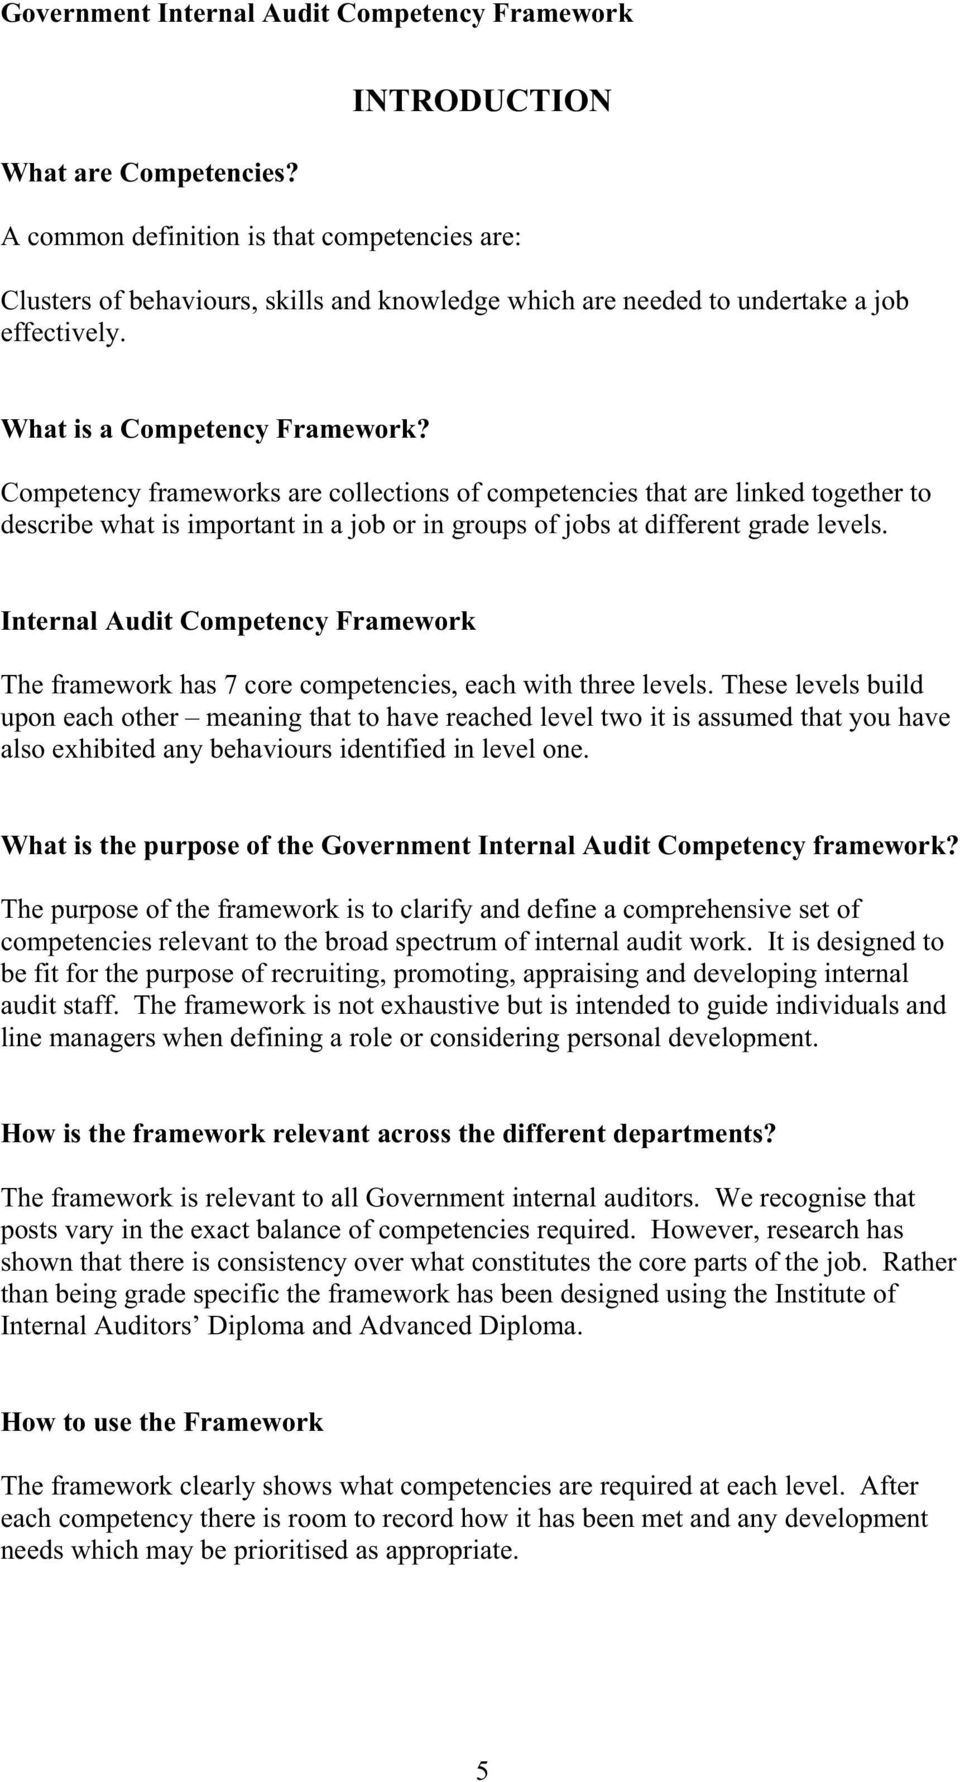 Internal Audit Competency Framework The framework has 7 core competencies, each with three levels.